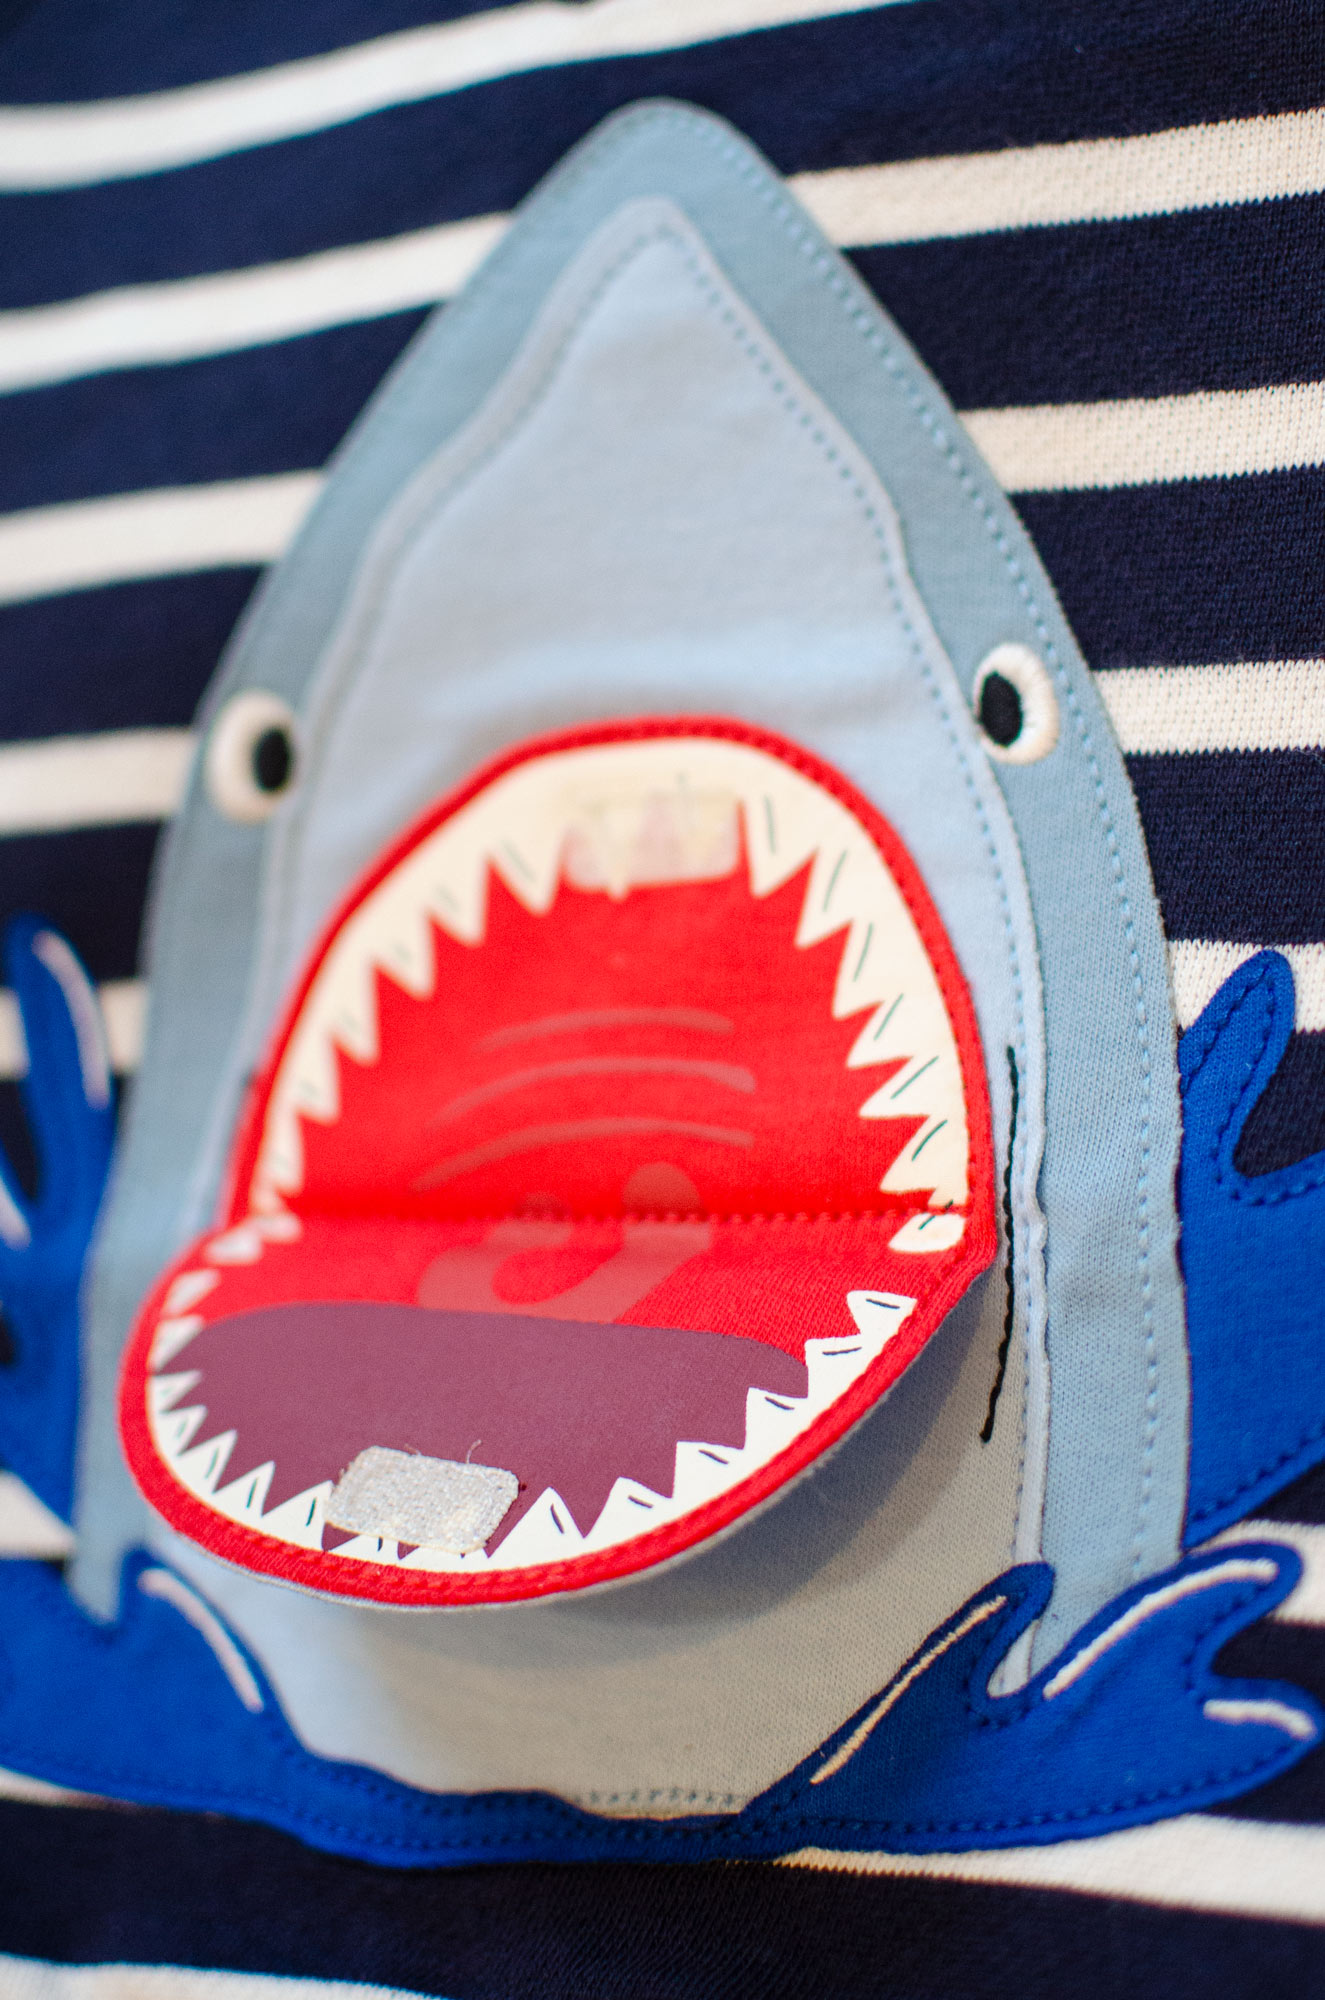 Detail of children's illustration of a shark for Joules by Elly Jahnz